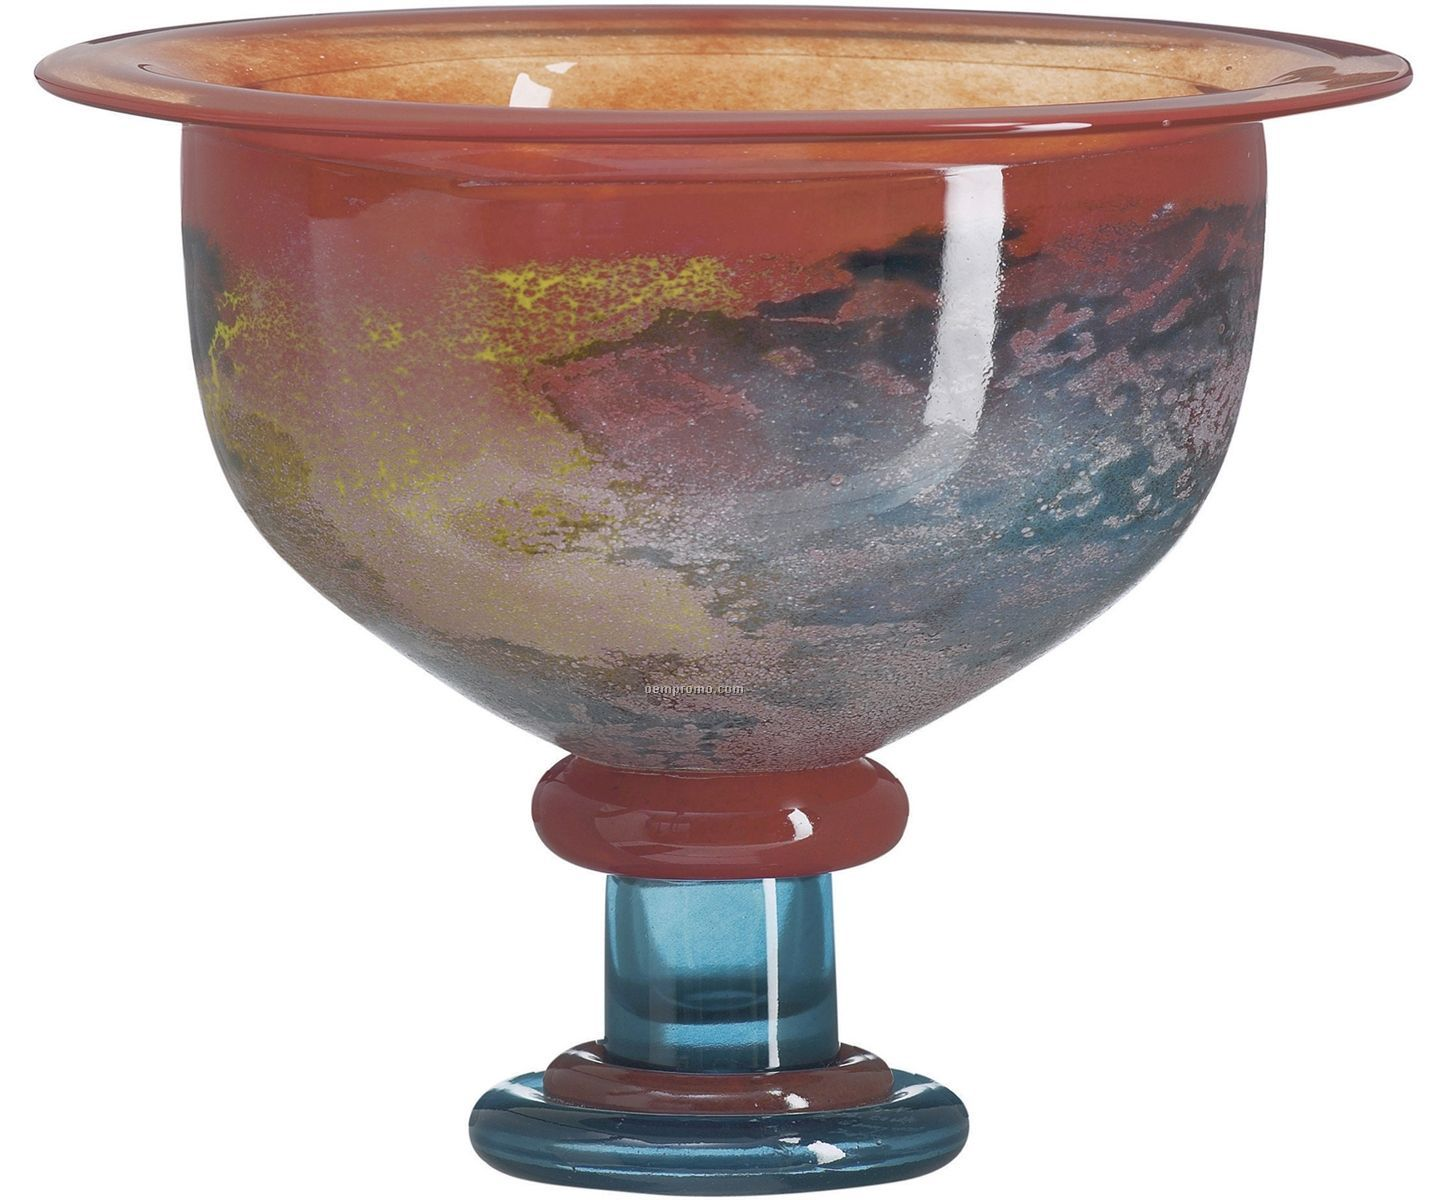 Cancan Glass Footed Bowl By Kjell Engman